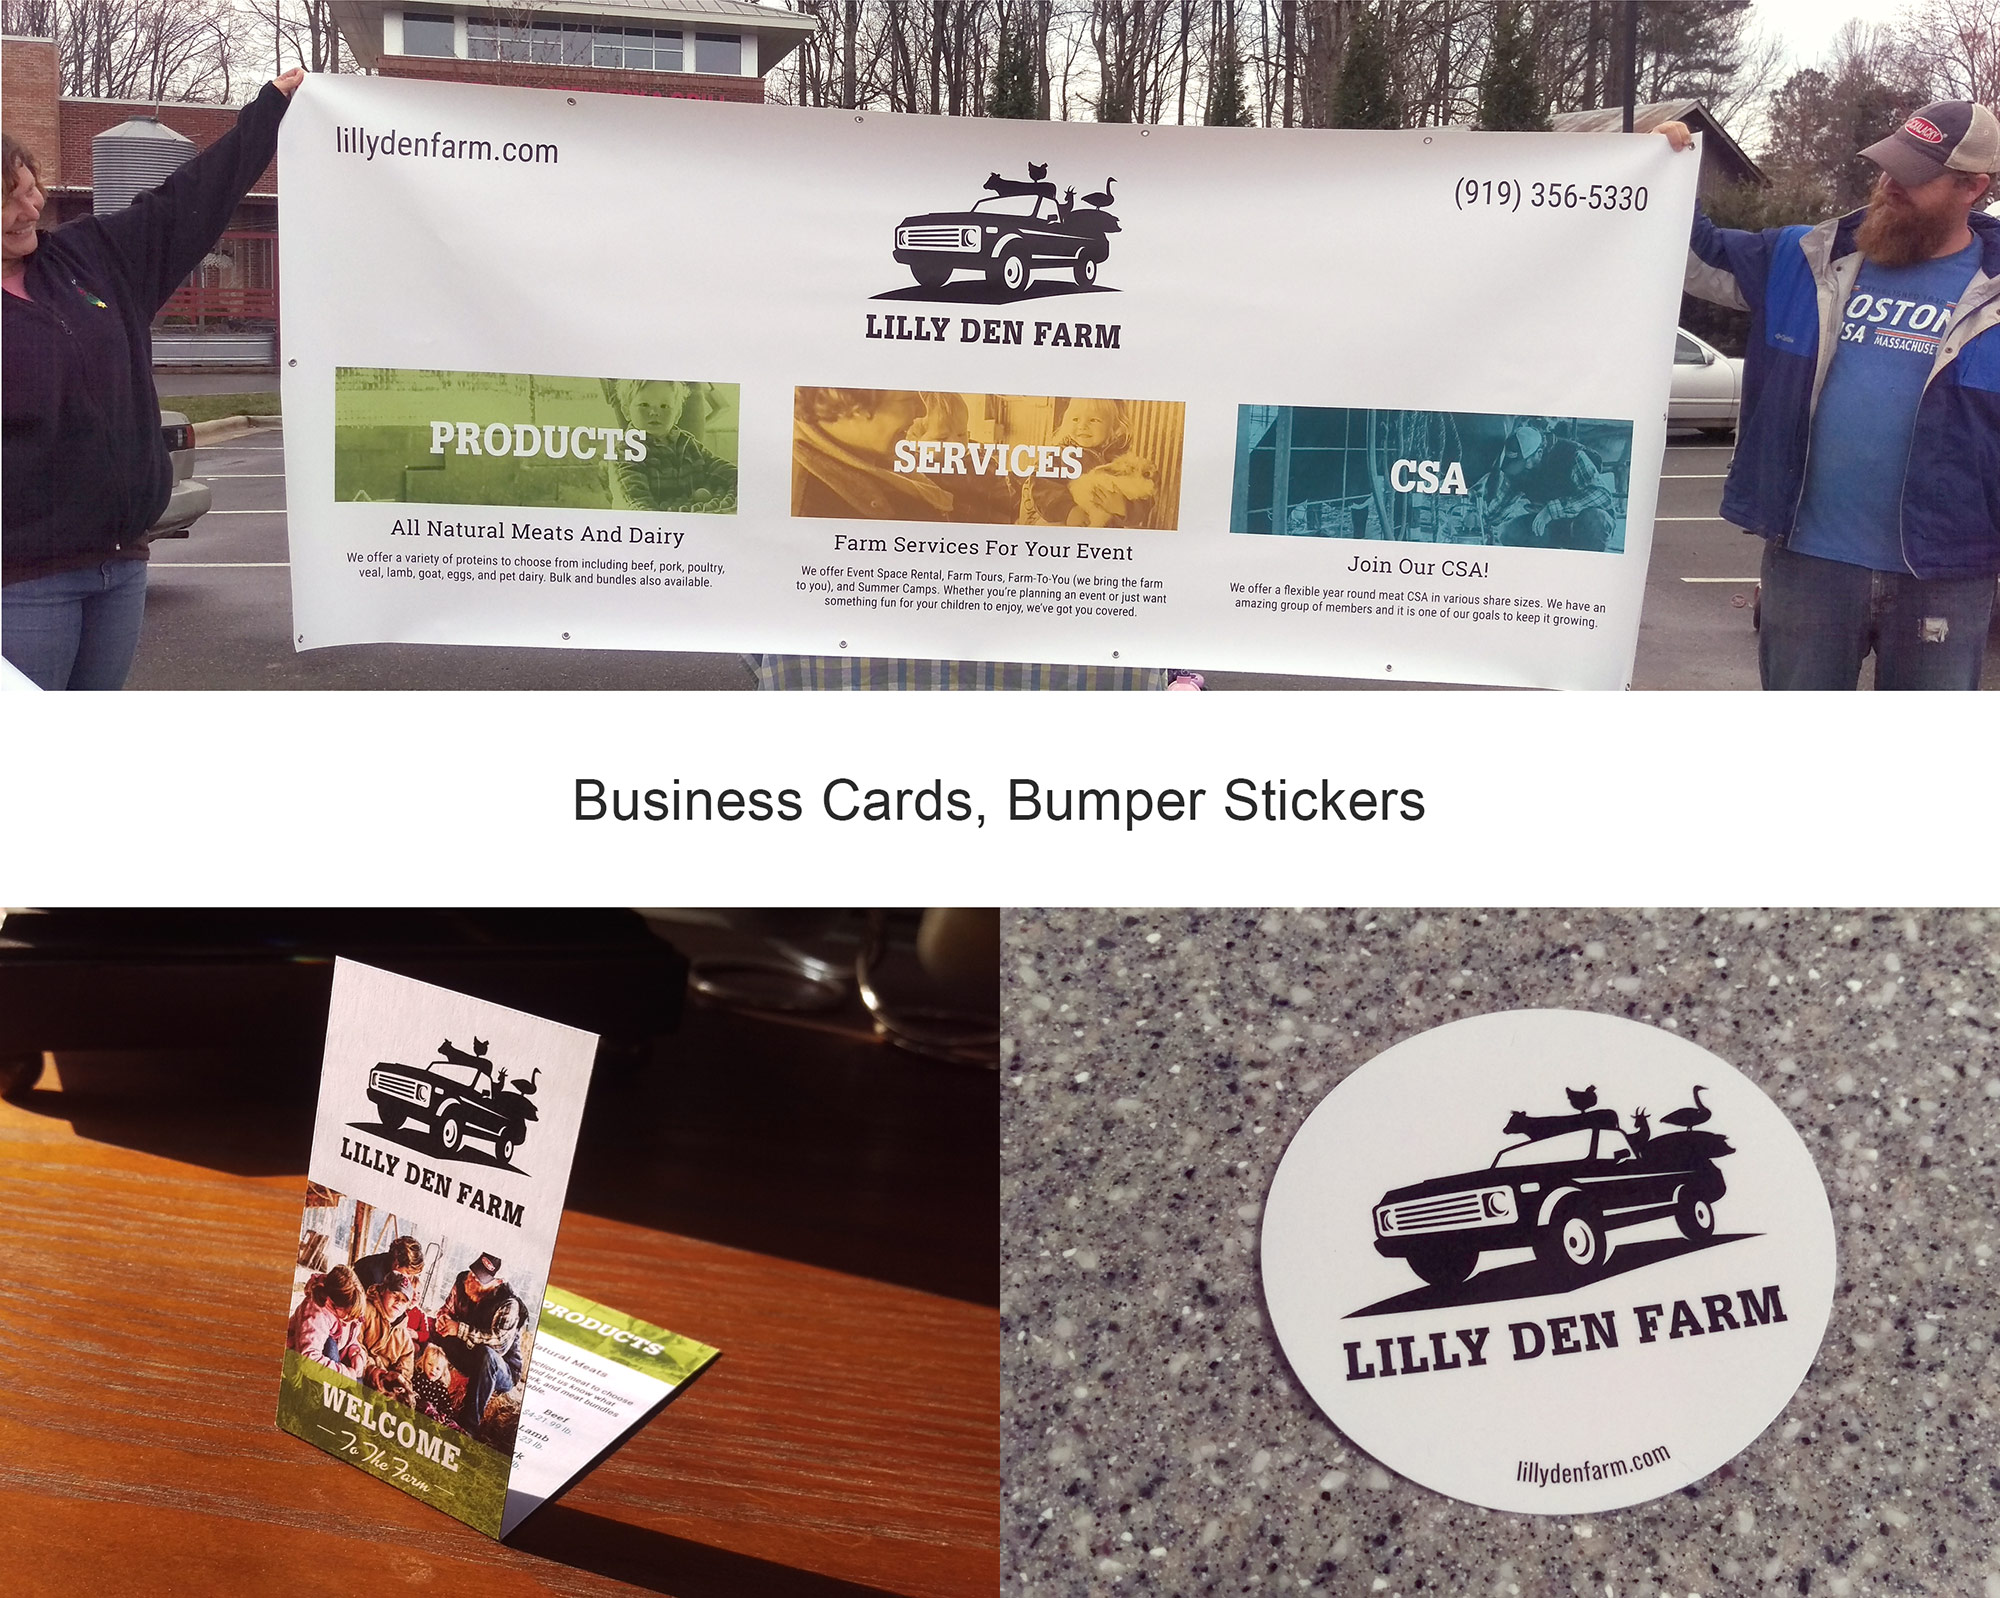 Lilly Den Farm vinyl tent banners, business cards, and bumper stickers